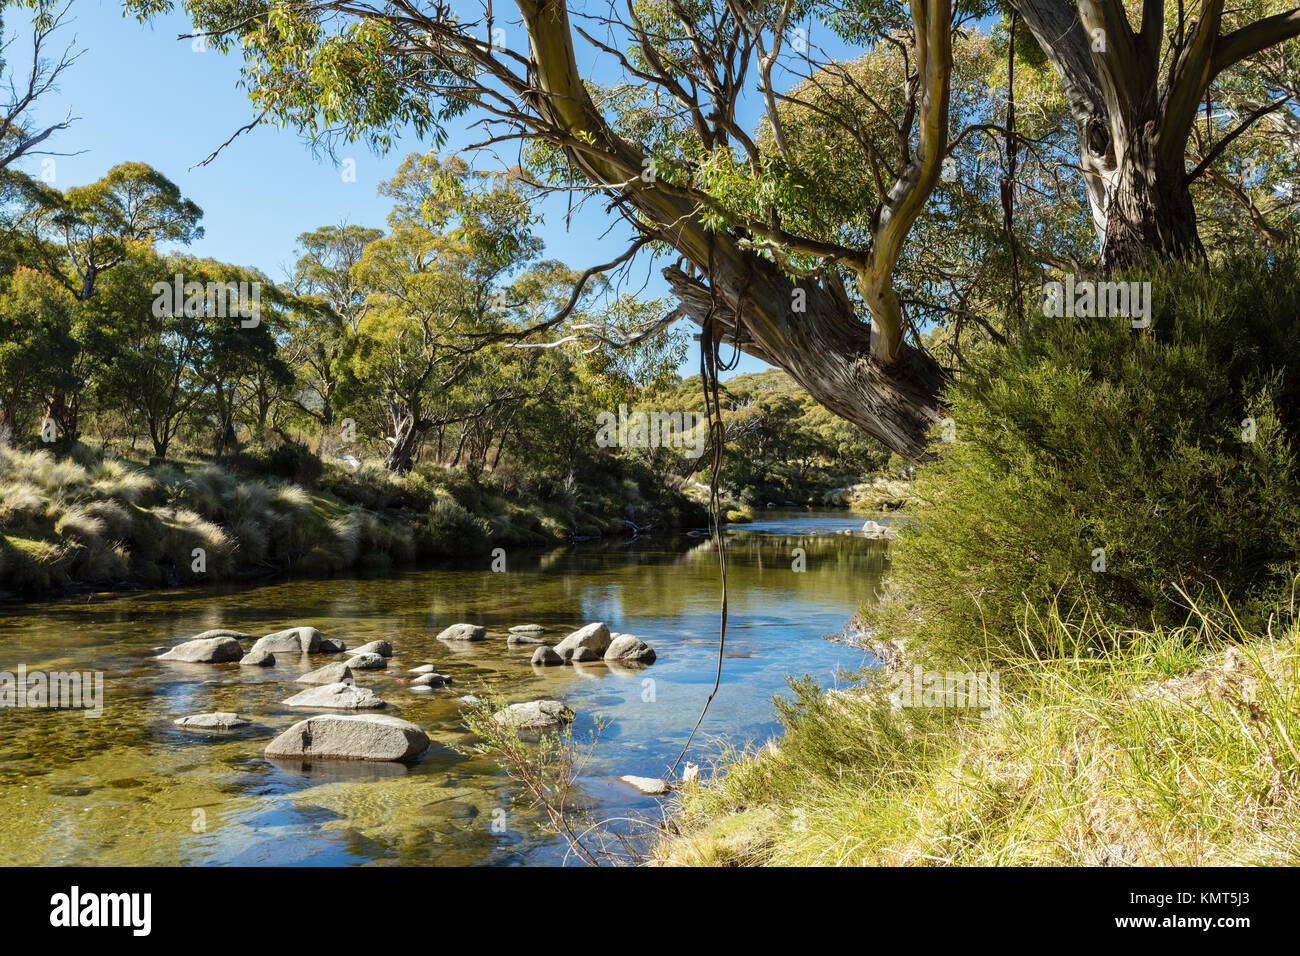 The Thredbo River at Thredbo Diggings in Kosciuszko National Park in the Snowy Mountains in southern New South Wales. Stock Photo